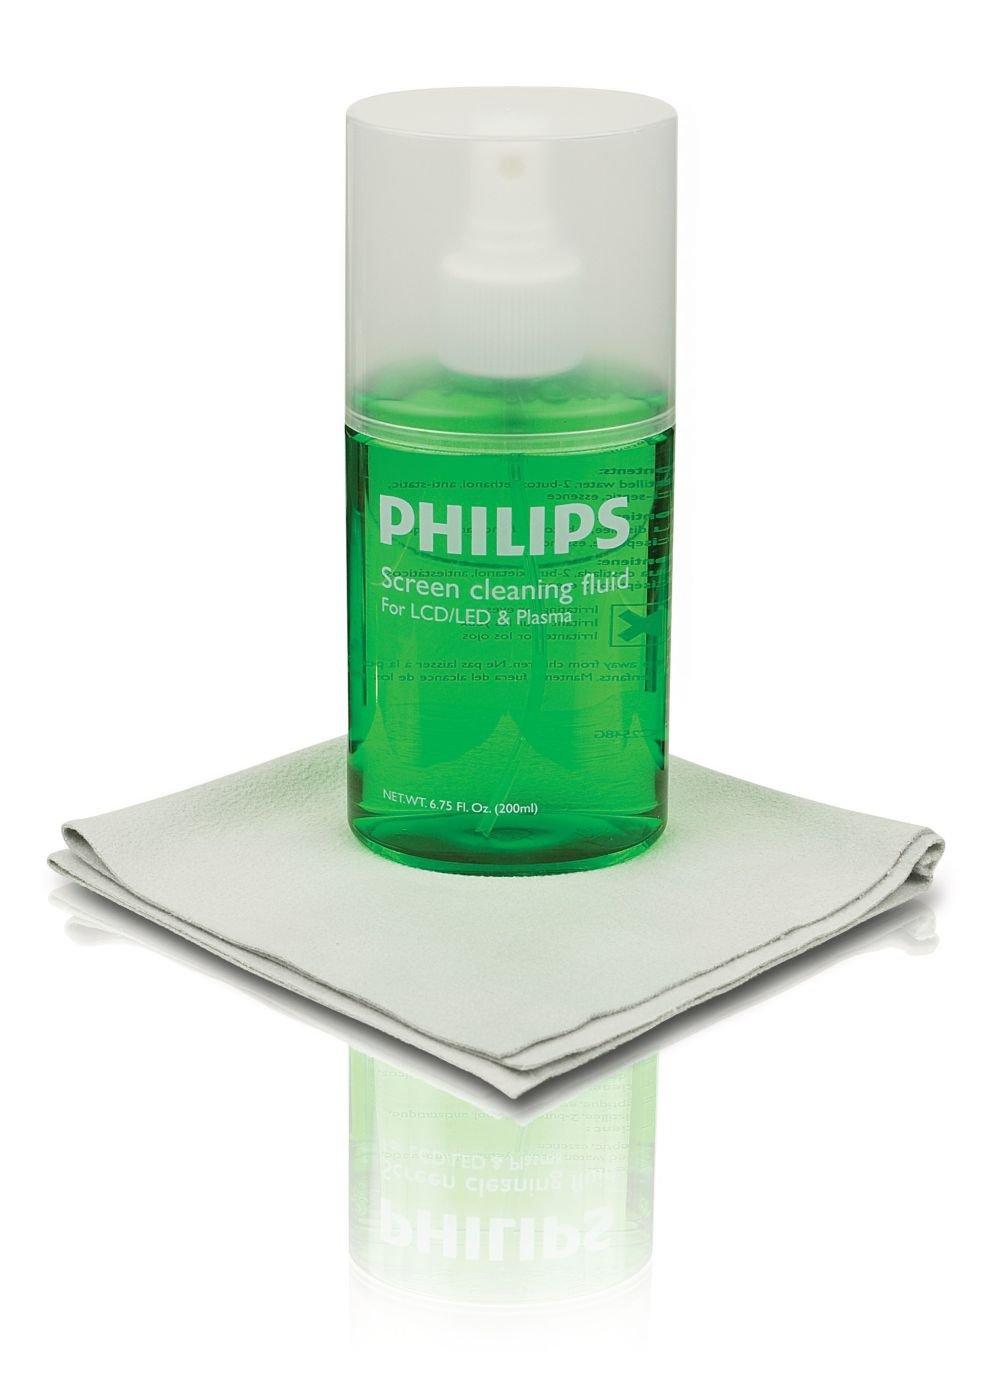 Philips Screen Cleaner, 200mL, for LCD, Plasma and Led TVs, Monitors, Tablets, Smartphones, Polyester Microfiber Cloth, Eco Friendly, Anti-Static, Germ-Free, SVC1116G/27